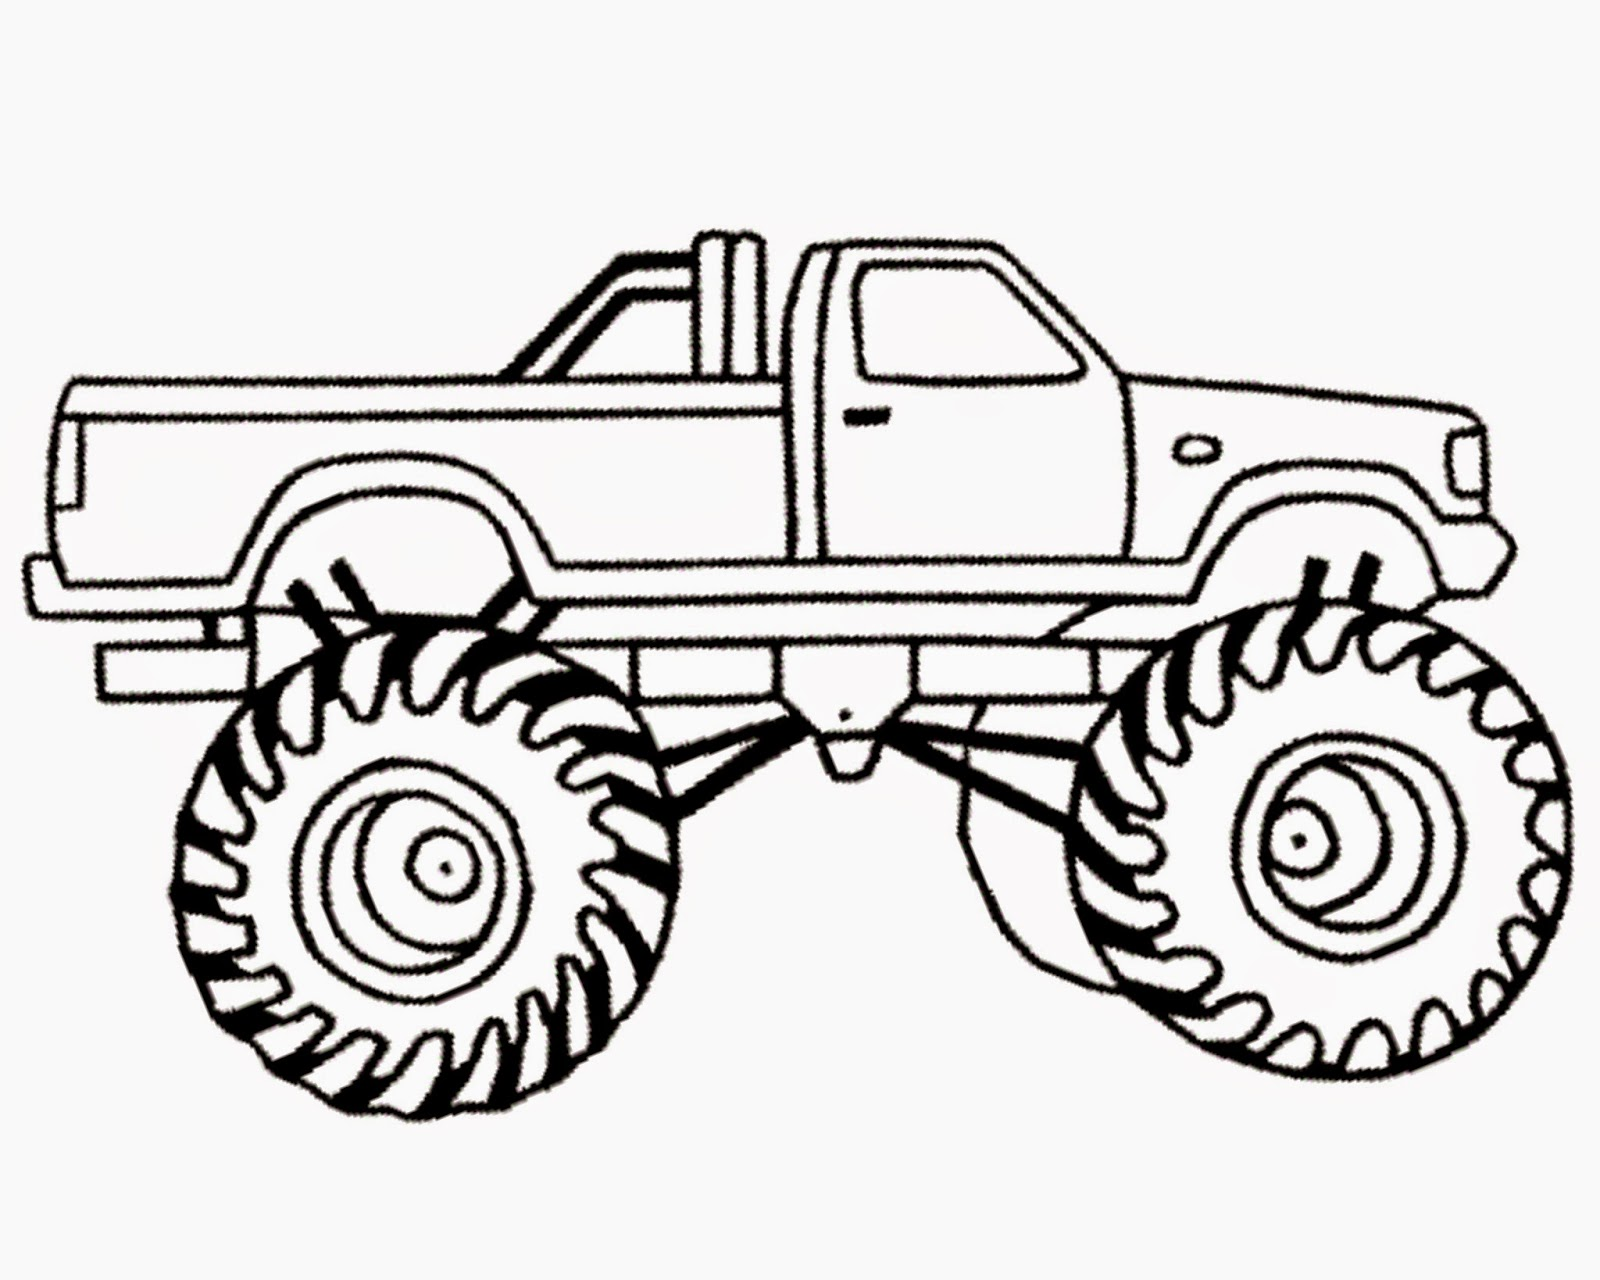 Pick Up Truck Drawing at GetDrawings.com | Free for personal use ...